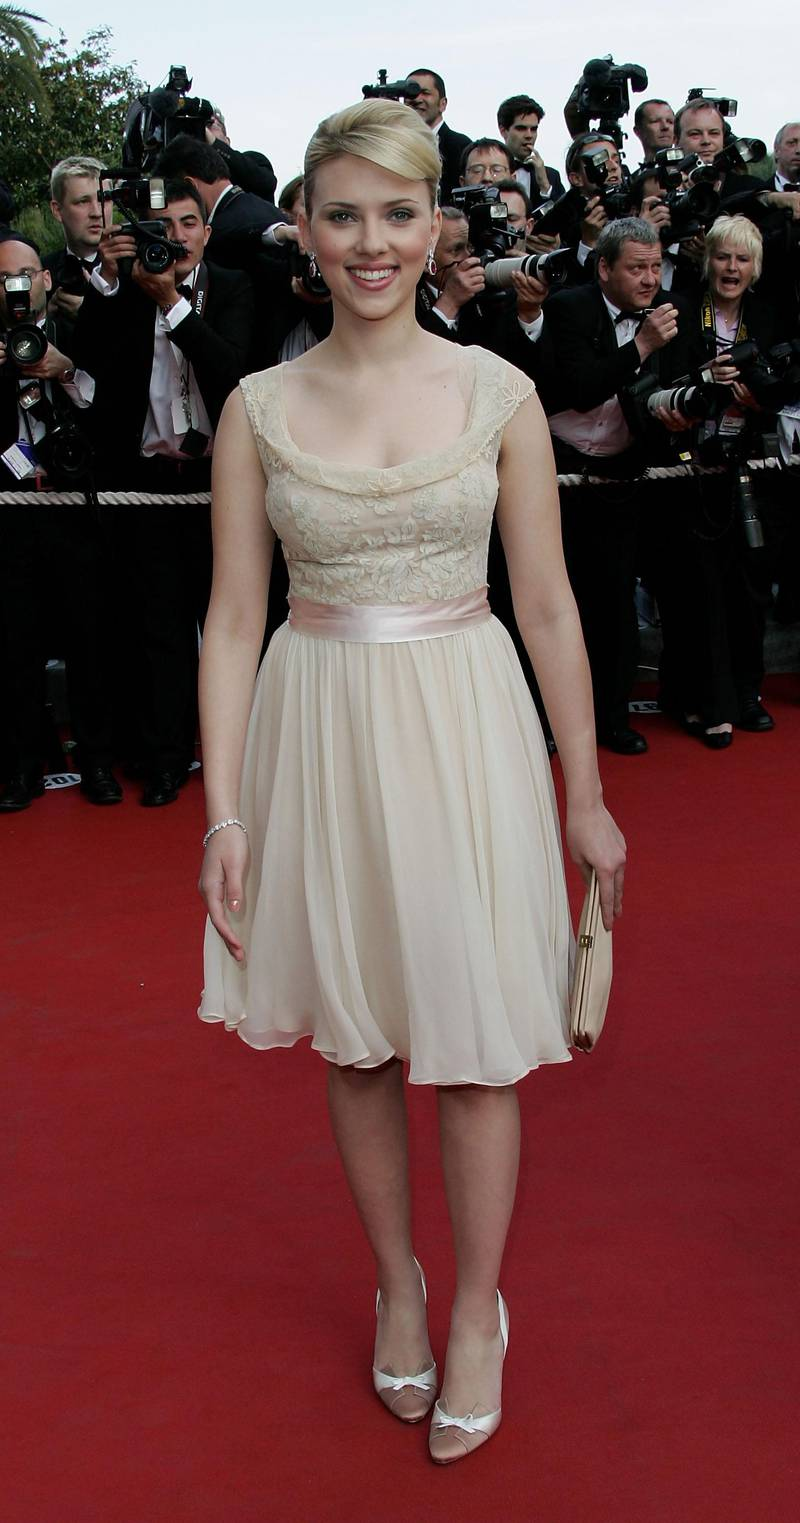 """CANNES, FRANCE - MAY 12:  Actress Scarlett Johansson attends the premiere of the film """"Match Point"""" at the Palais during the 58th International Cannes Film Festival May 12, 2005 in Cannes, France.  (Photo by MJ Kim/Getty Images)"""